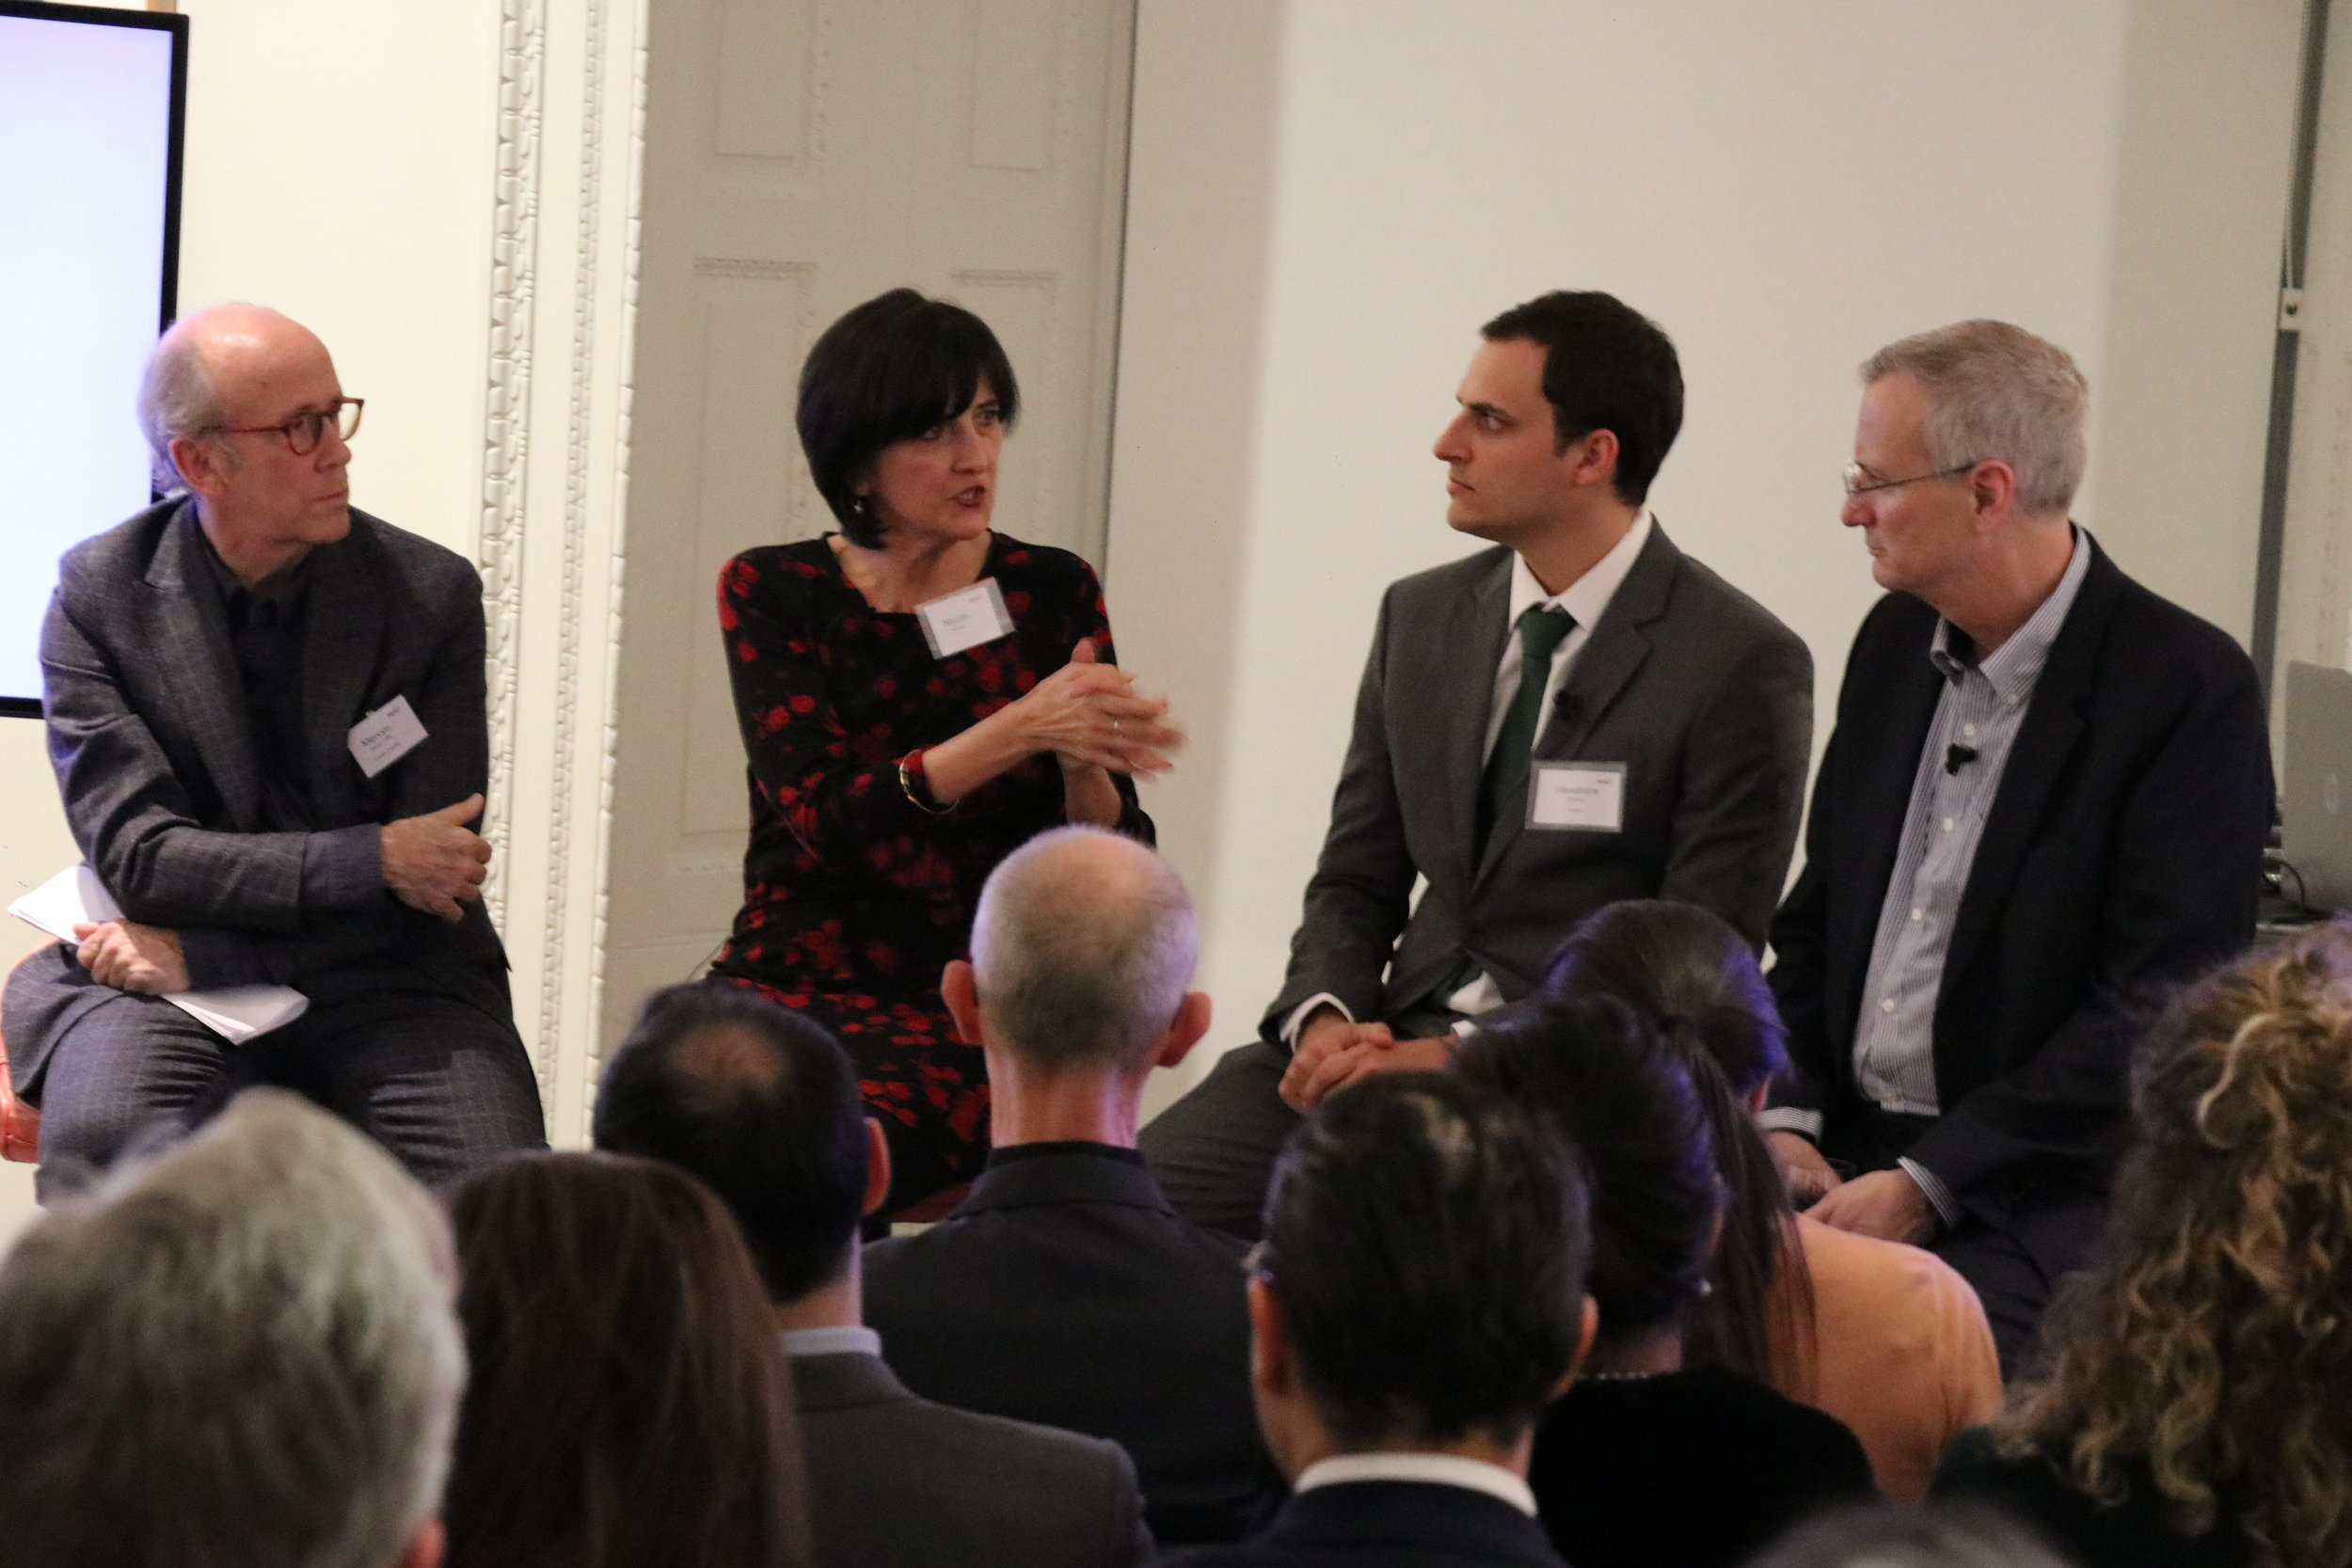 (Left to right) Mervyn Davies, Nicole Etchart, Alexandre Messina, and Bob Annibale | Joye Leventhal for NESsT